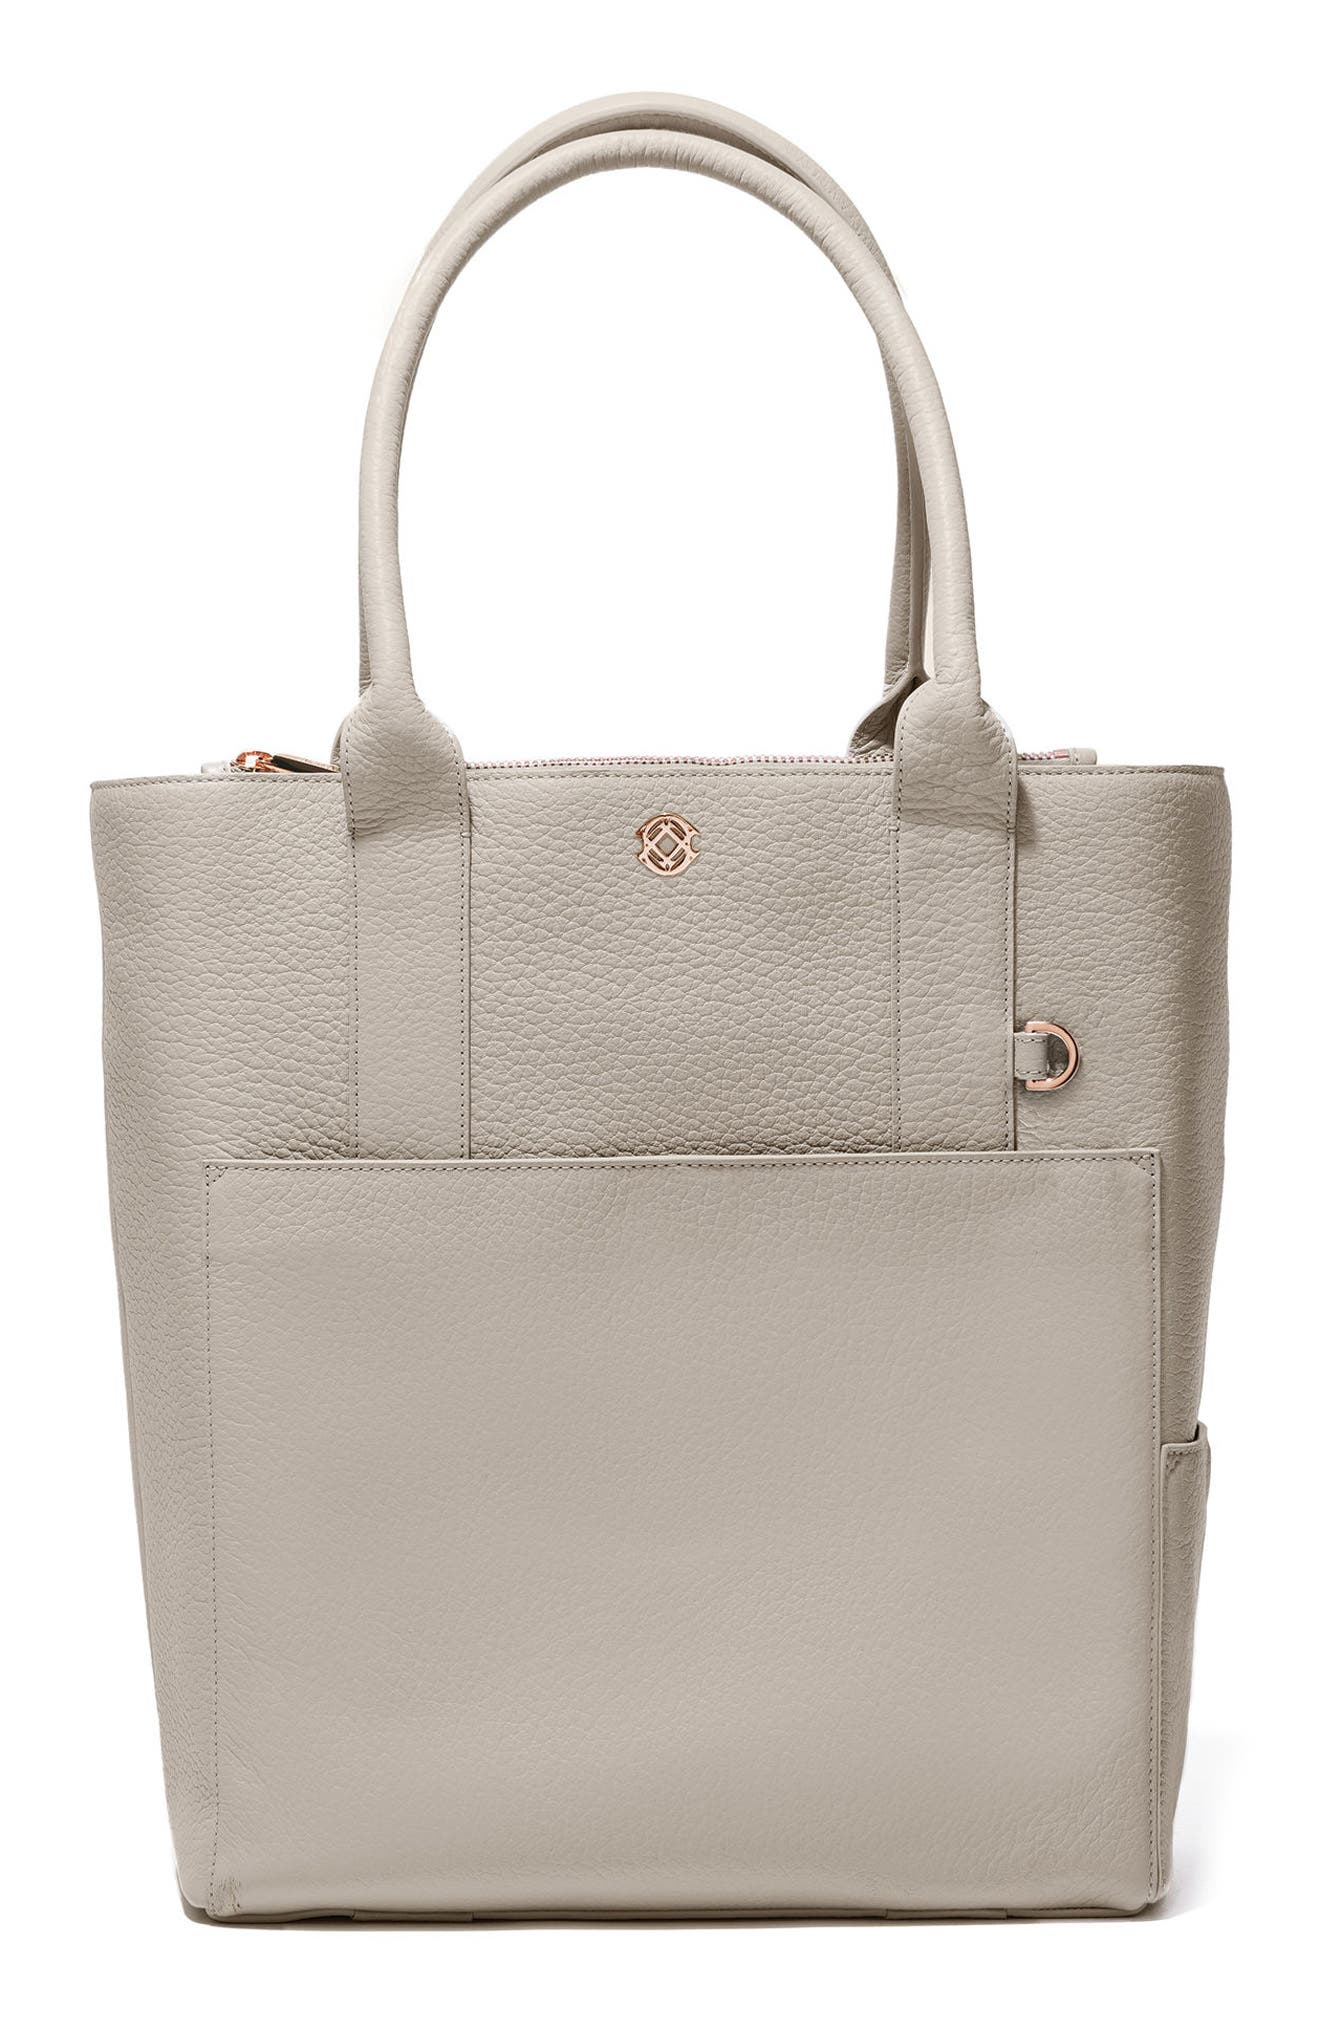 Charlie Leather Tote,                             Main thumbnail 1, color,                             Bone